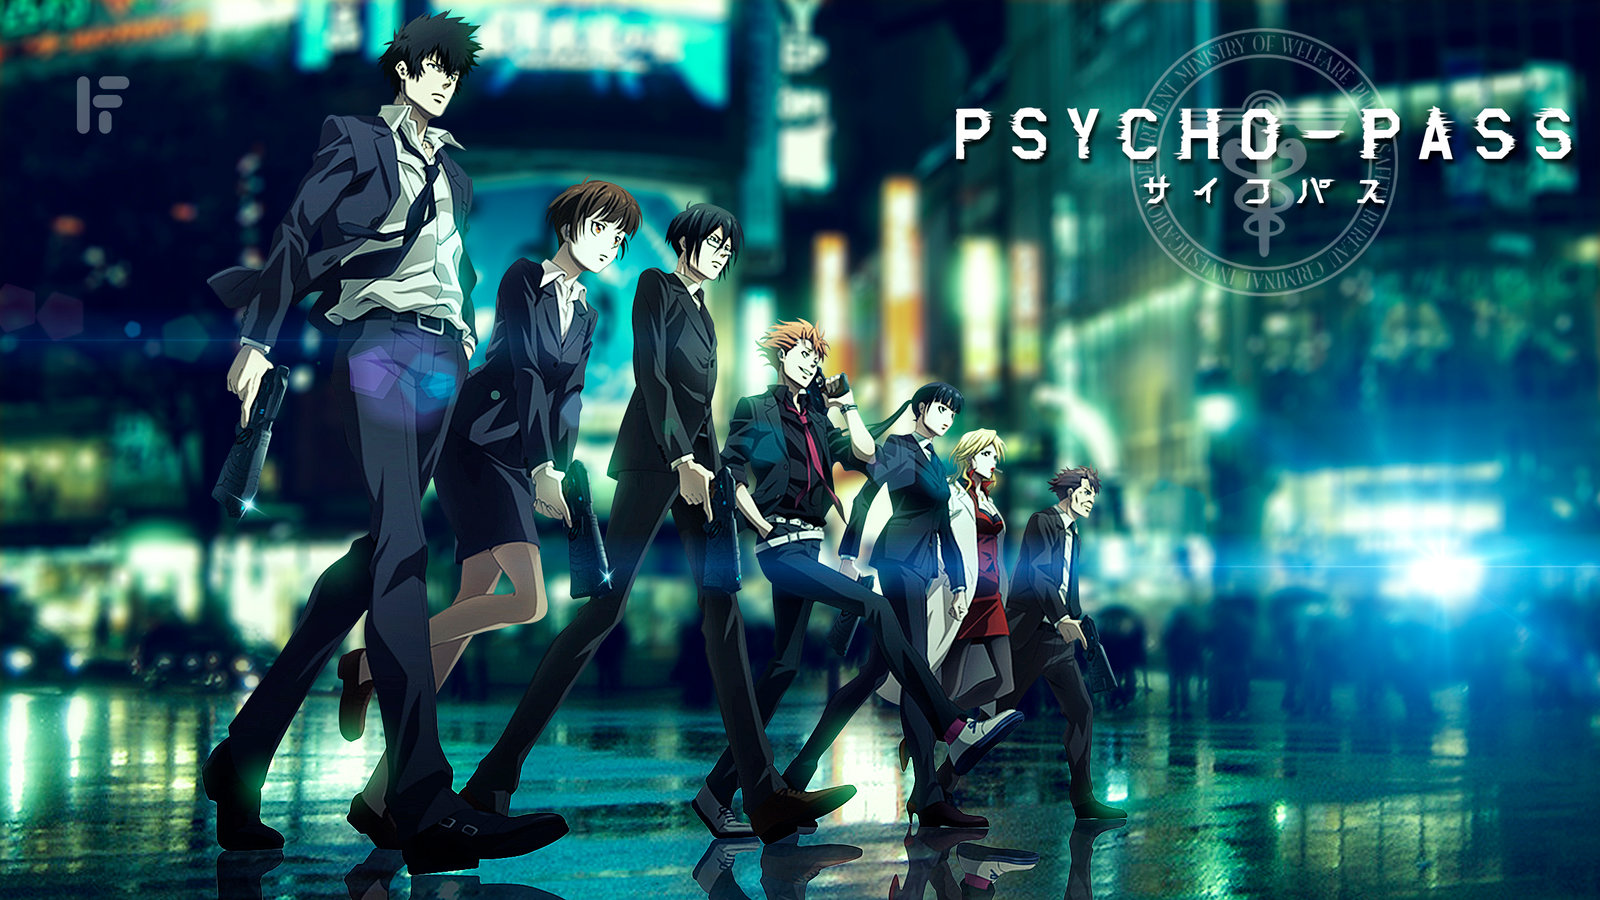 Psycho Pass Wallpaper